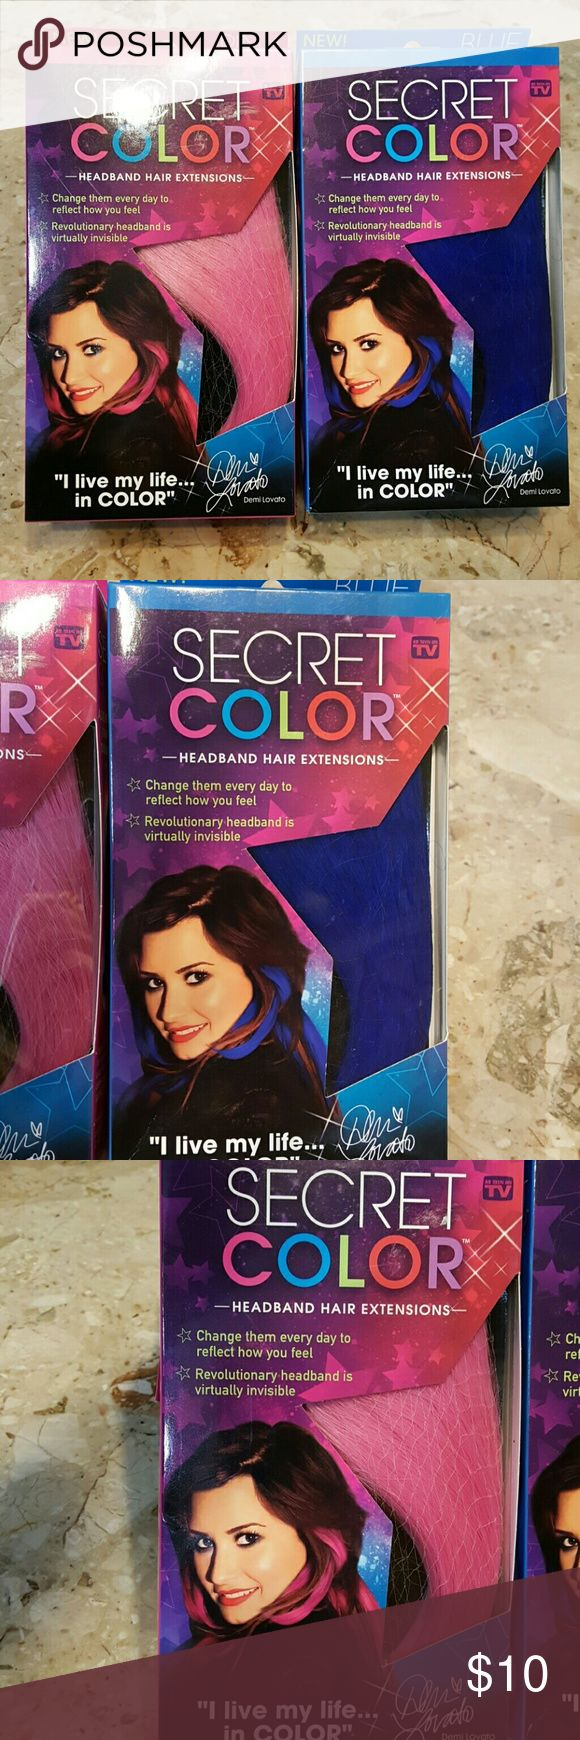 Secret Color Headband Hair Extensions 2 Pack Secret Color Headband Hair Extensions 2 Pack  You will receive 1 PINK extension & 1 BLUE extension.  Endorsed by Demi Lovato.  Boxes are new & factory sealed!! As seen on TV product.  Feel free to ask any questions before purchasing.  Thanks for shopping my closet! Secret Color  Accessories